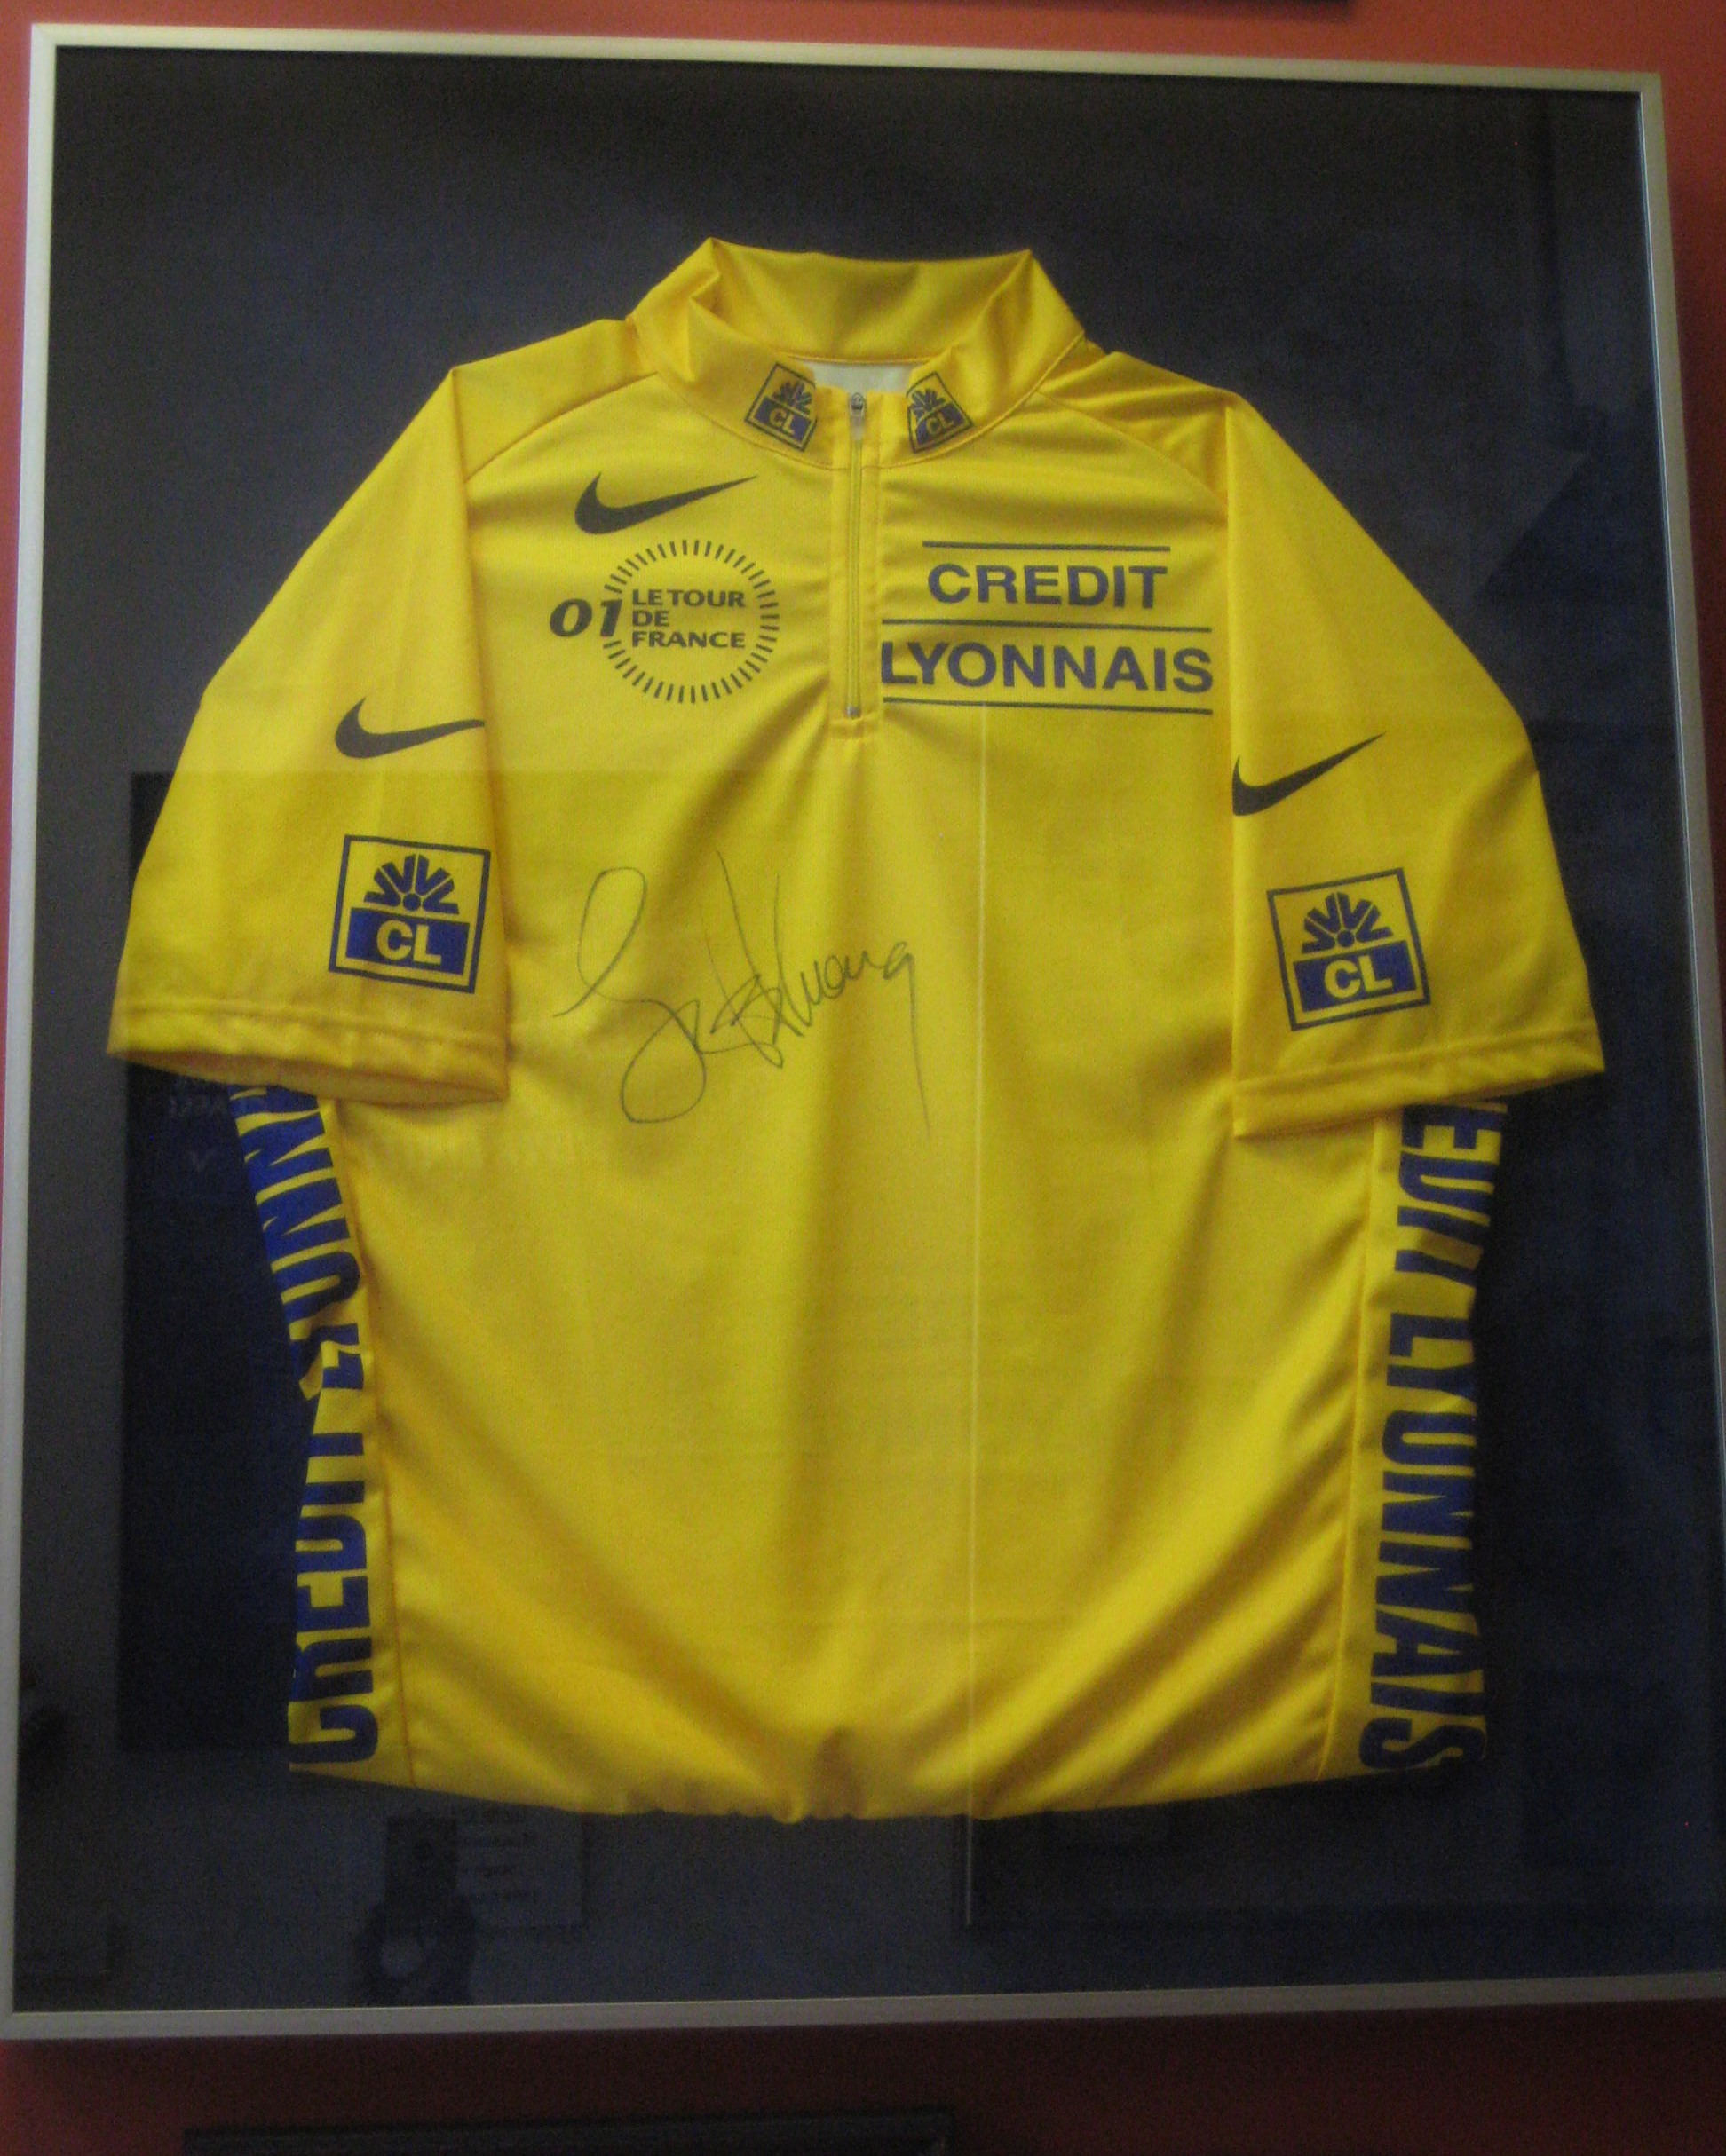 One of Lance Armstrong s 2001 Tour de France Yellow Jerseys 9c0b64aba